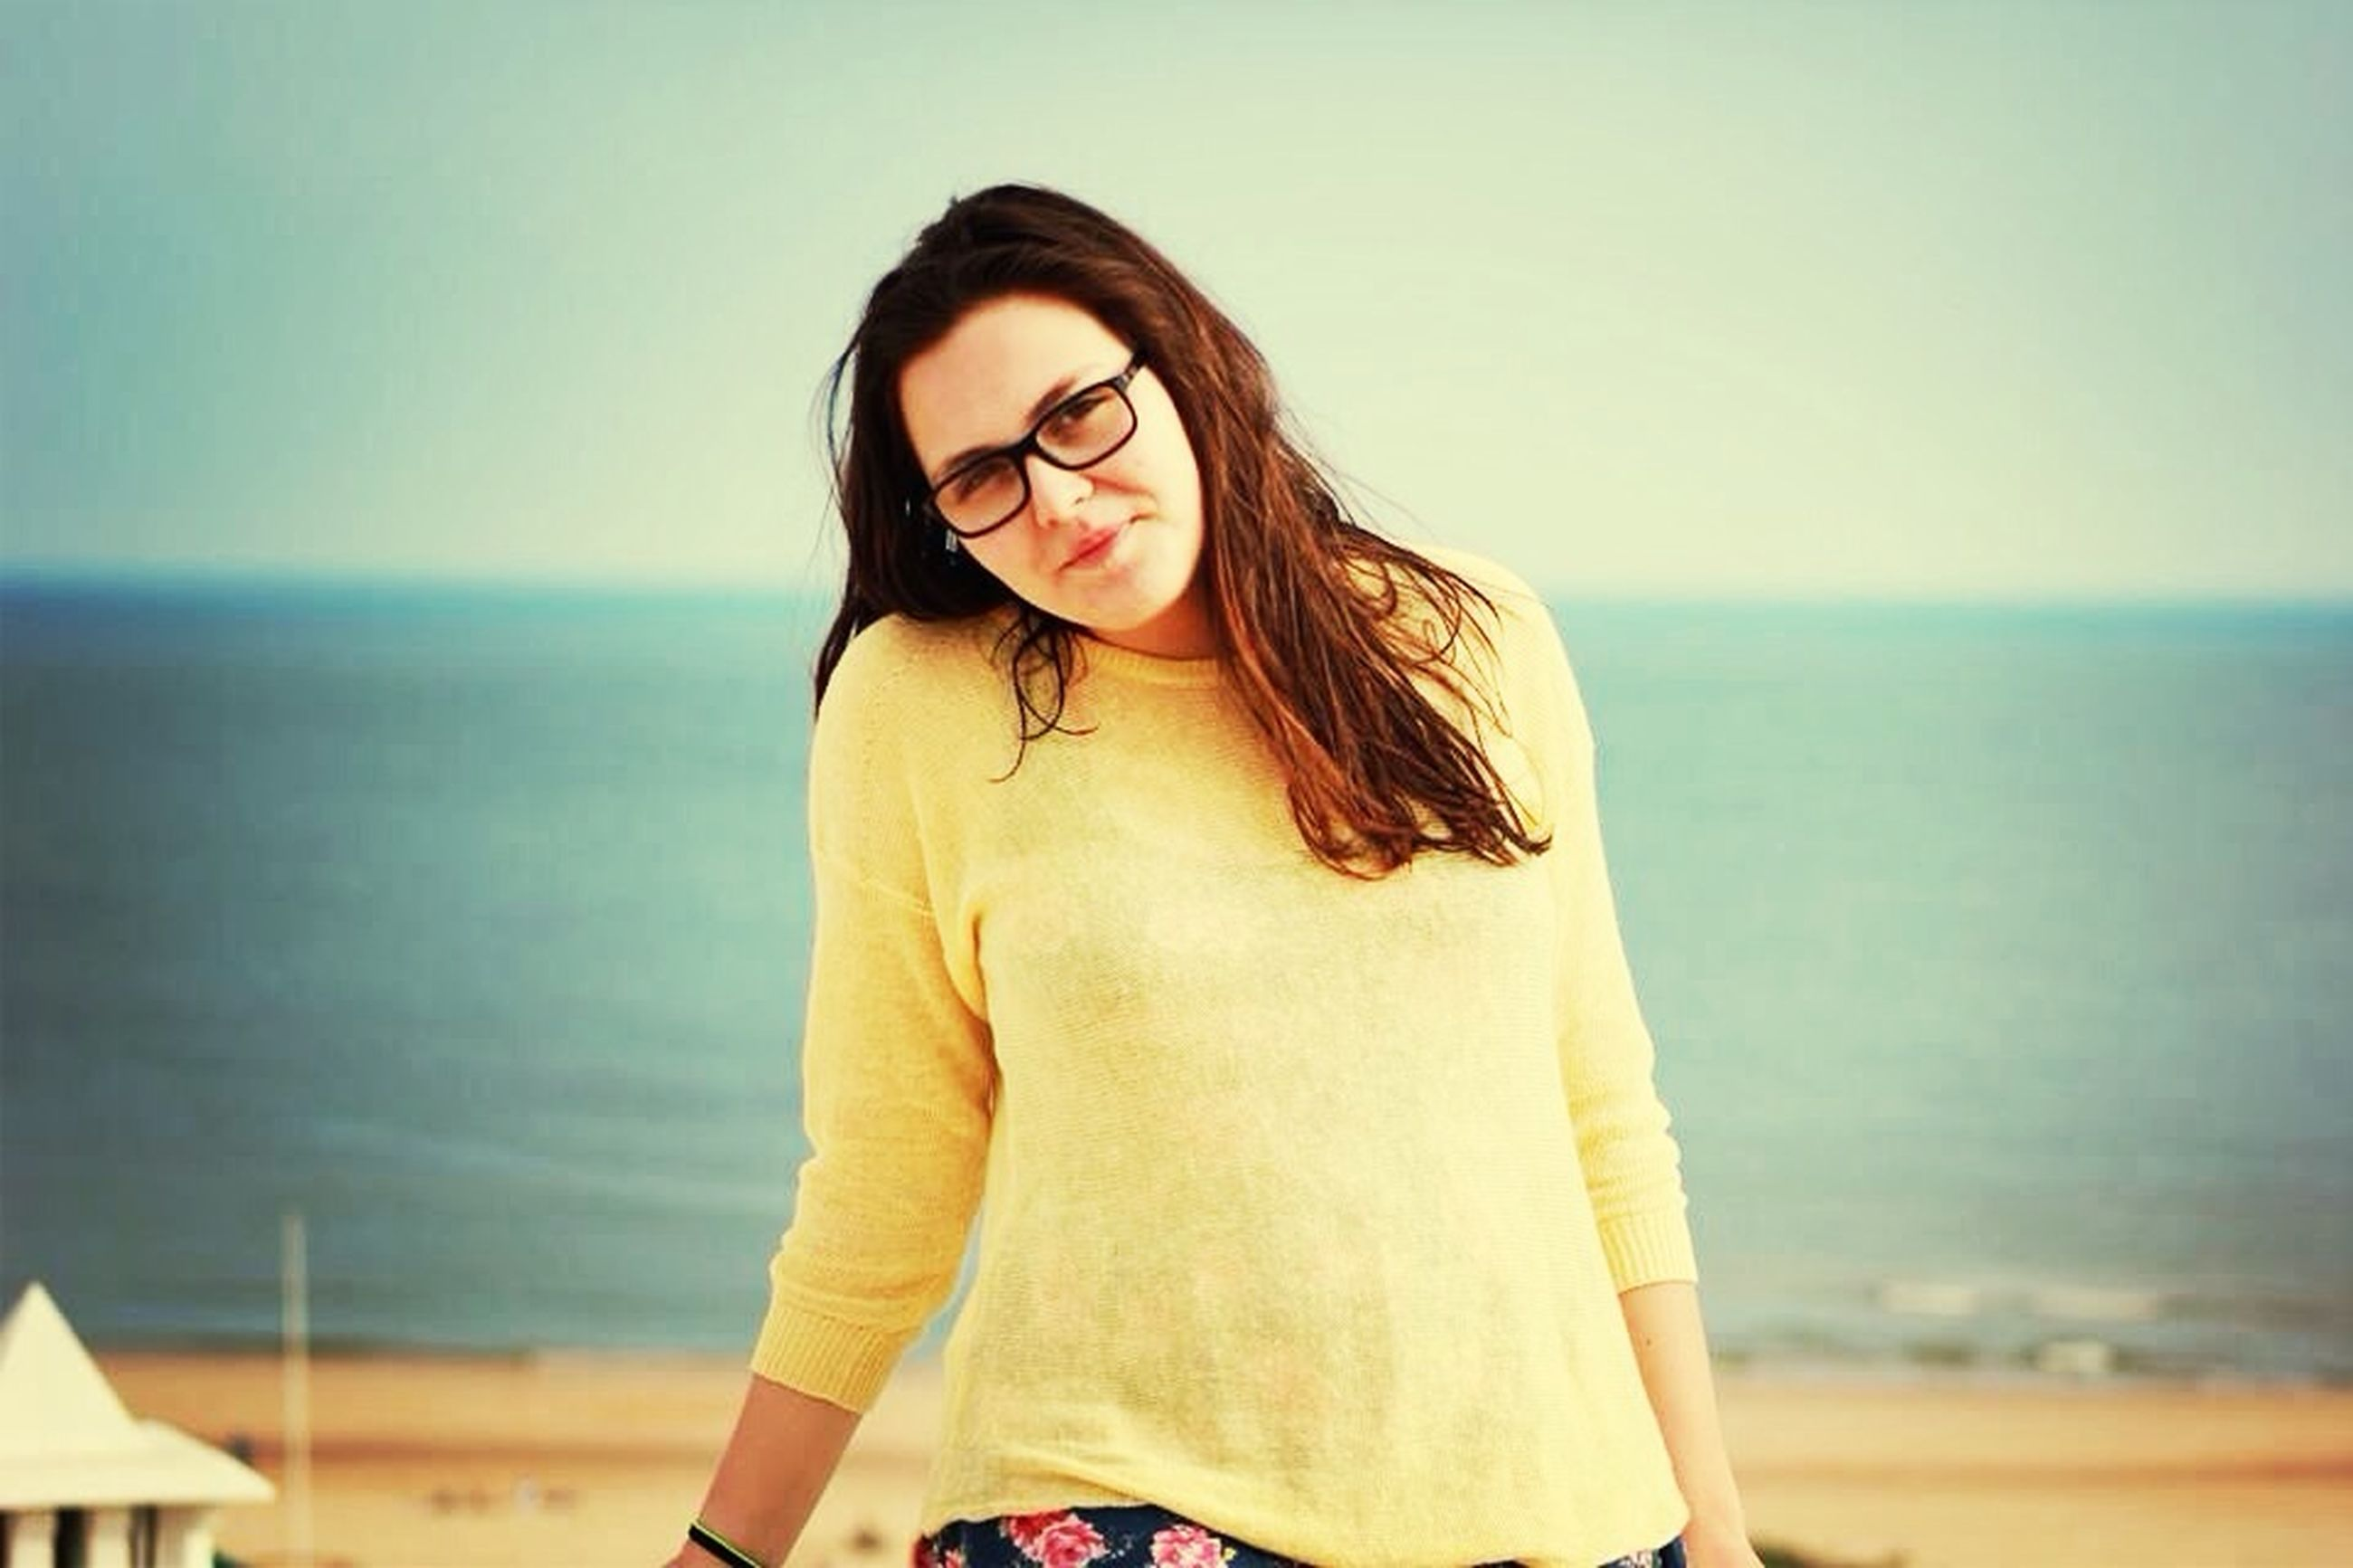 young adult, person, lifestyles, young women, looking at camera, portrait, sea, leisure activity, sunglasses, front view, casual clothing, beach, standing, water, focus on foreground, three quarter length, long hair